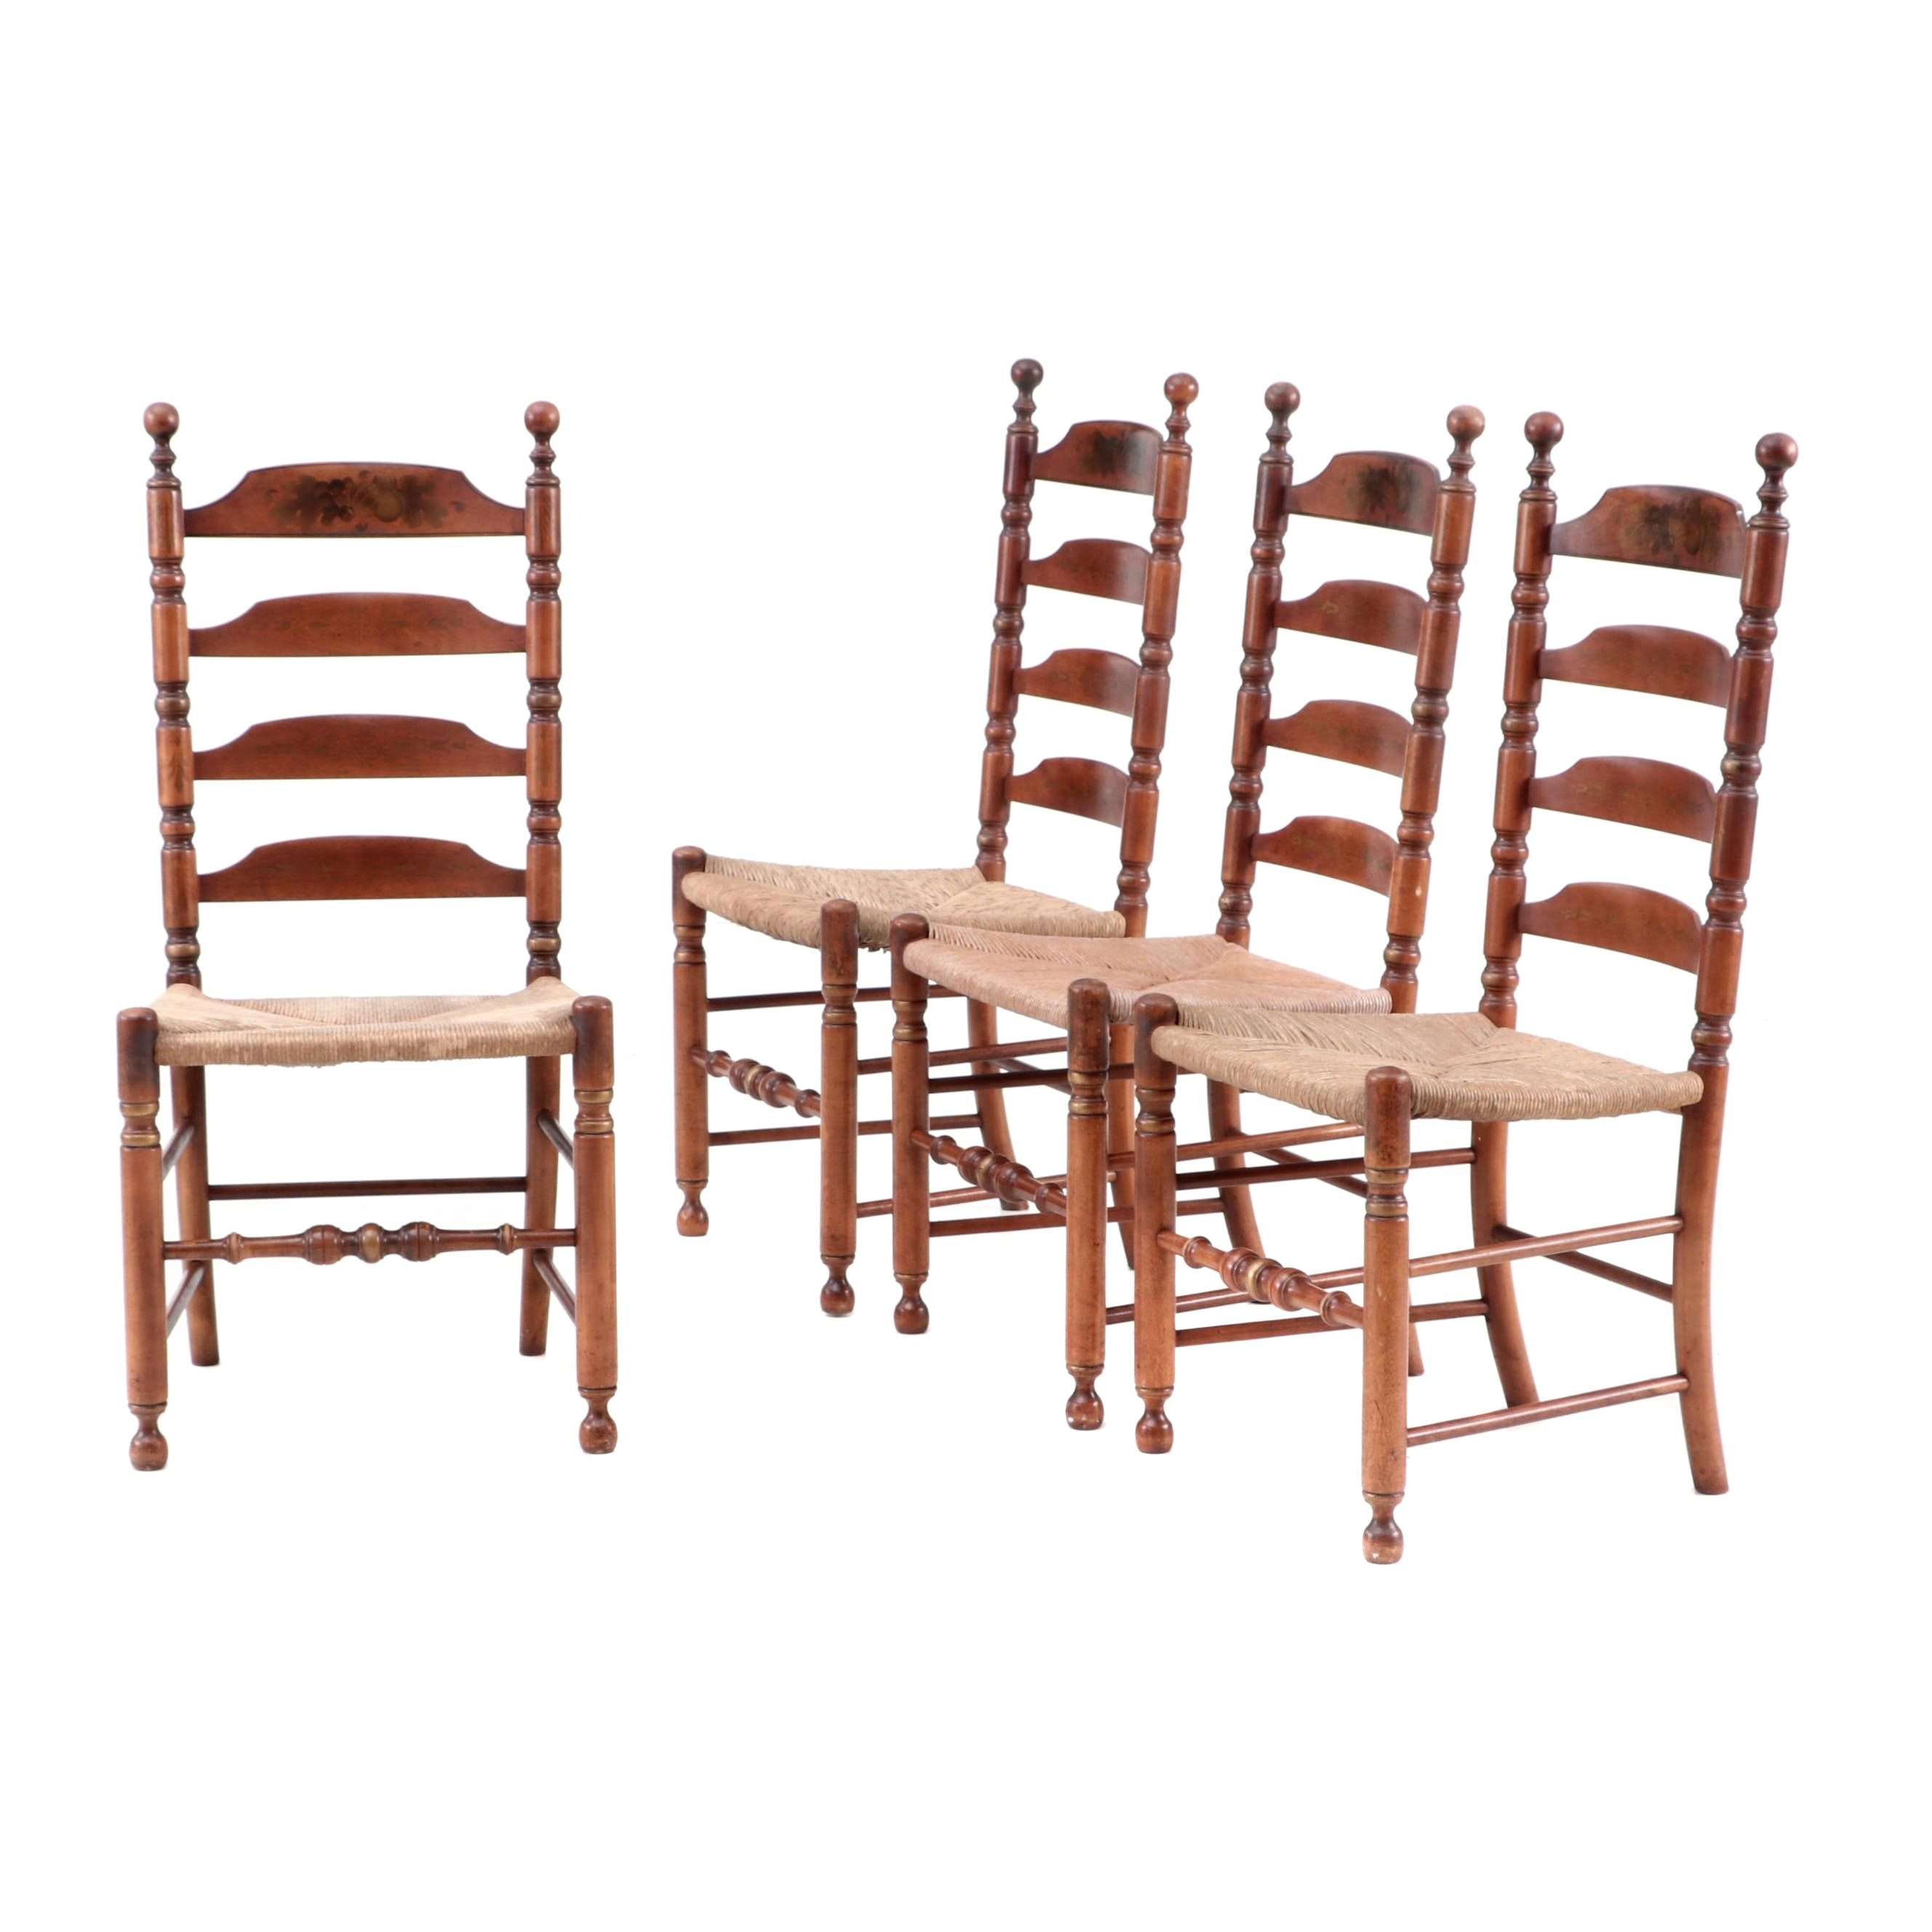 Four Hitchcock Ladder-Back Side Chairs